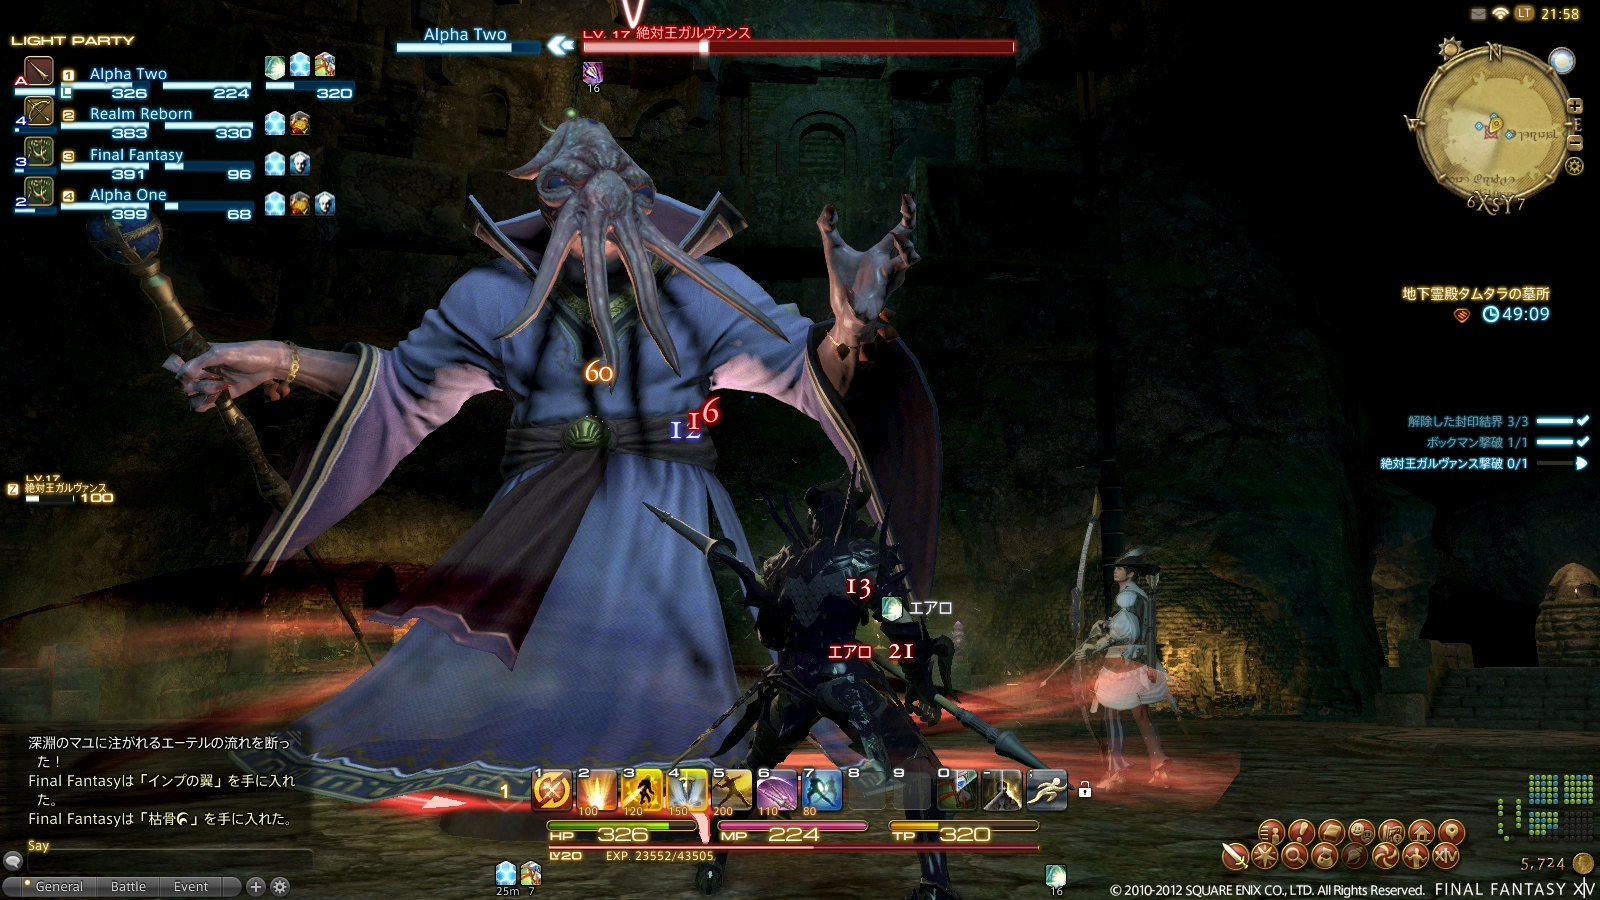 New Final Fantasy XIV A Realm Reborn Alpha Screenshots Showcase More Of The Dungeon Bosses